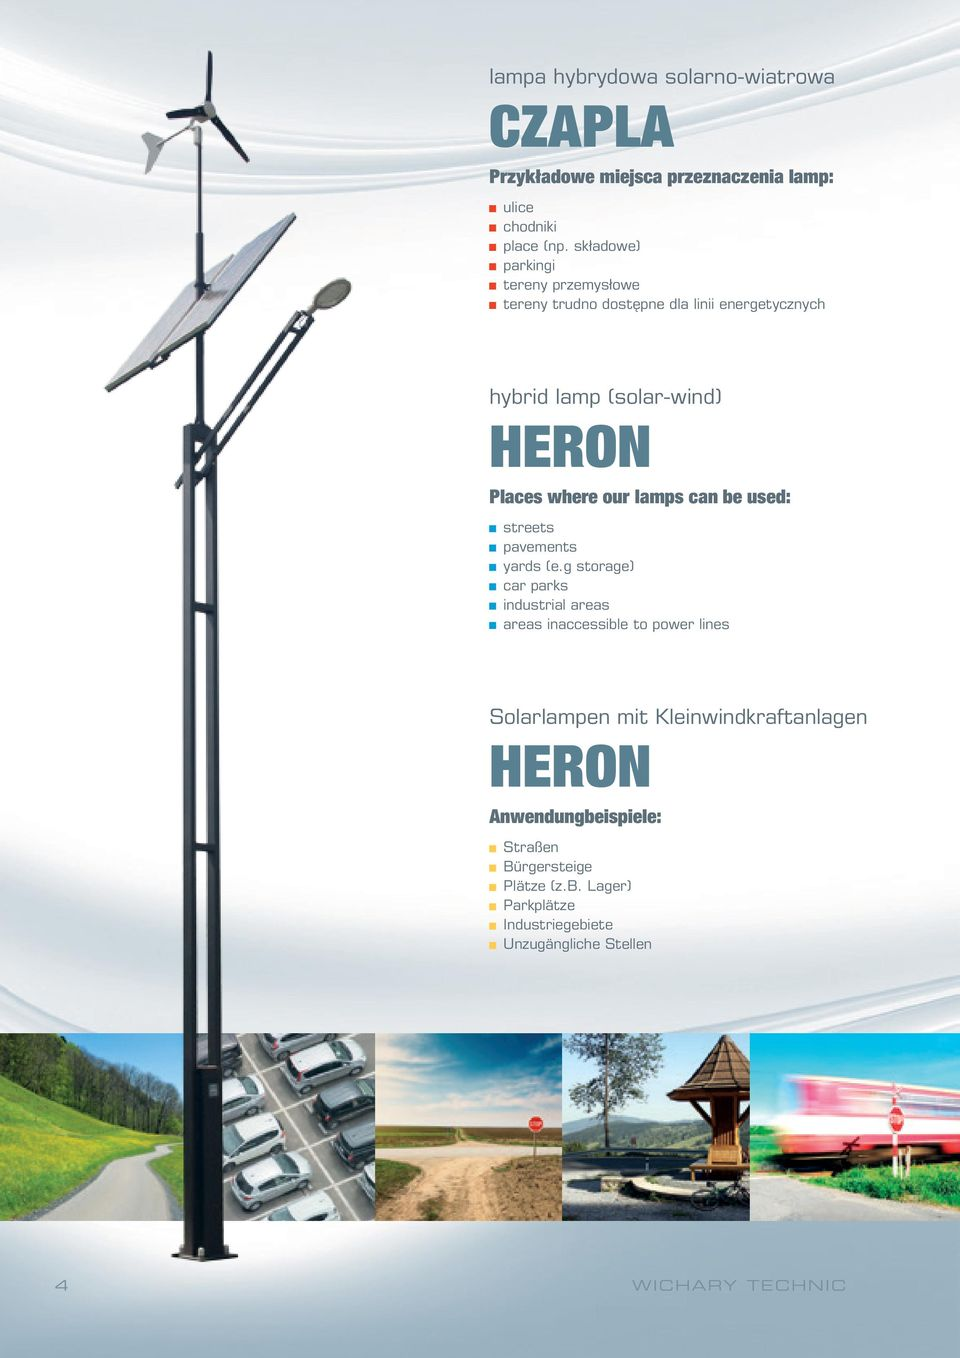 our lamps can be used: streets pavements yards (e.